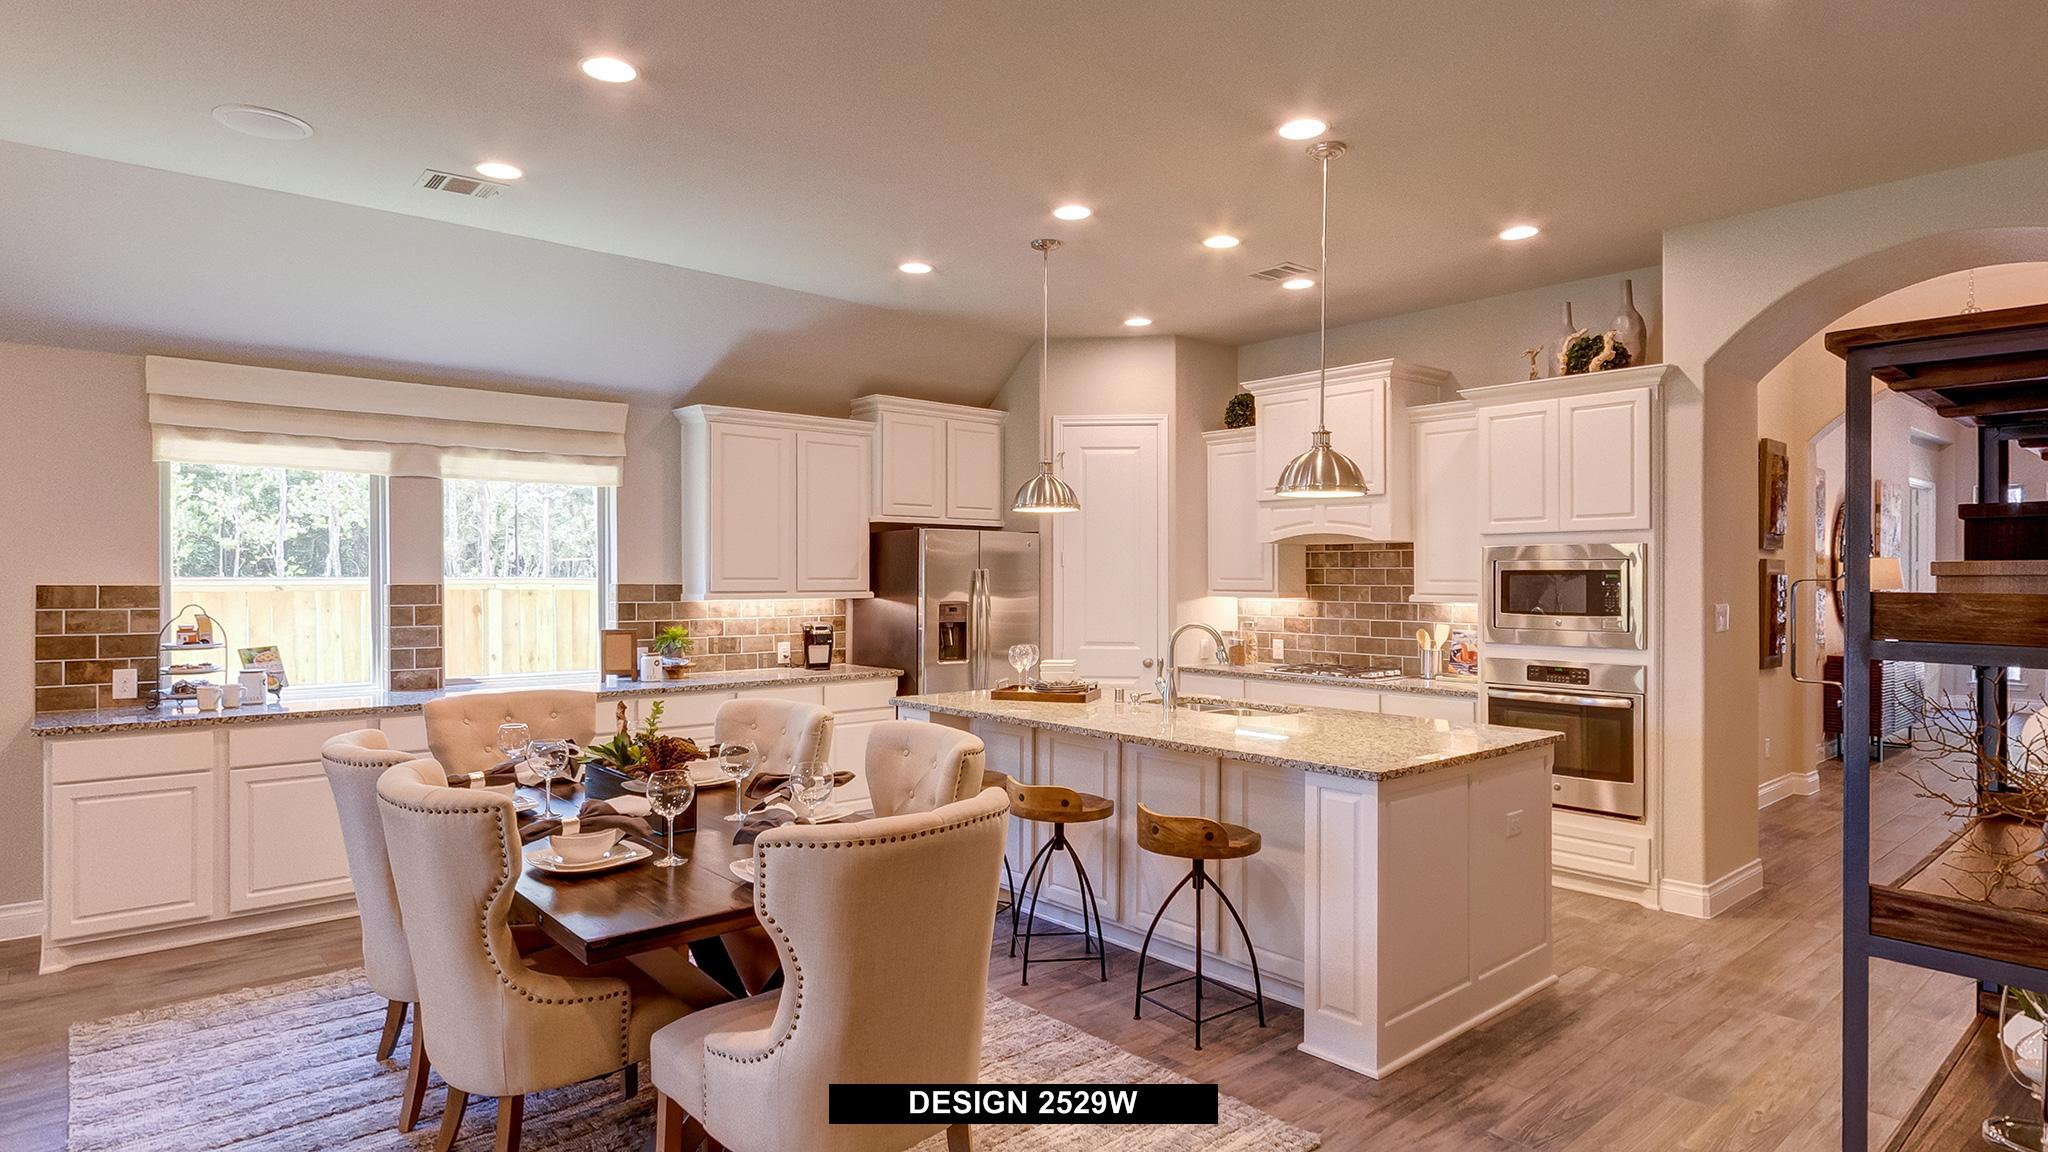 Kitchen-in-2529W-at-The Groves 50'-in-Humble